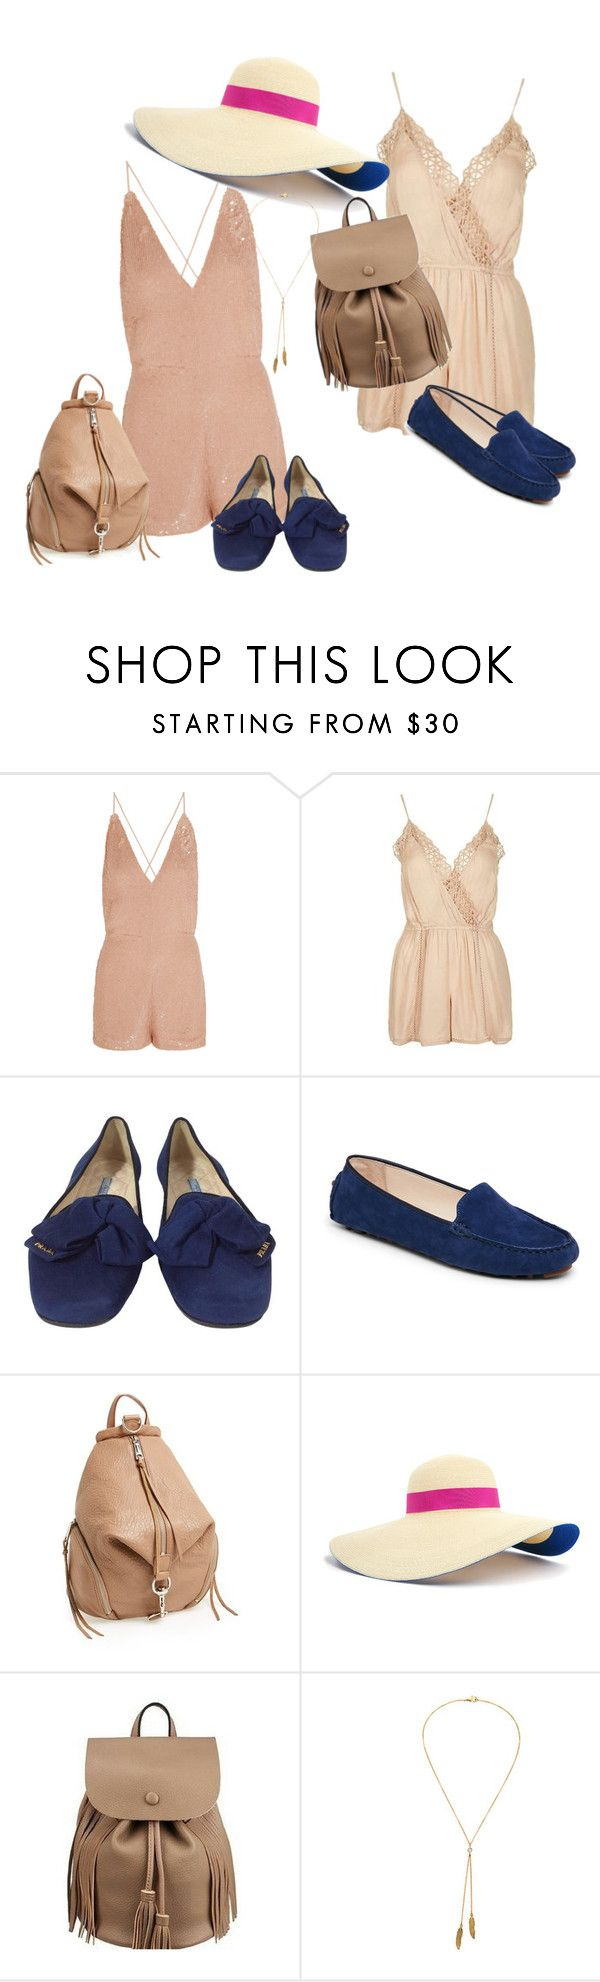 """luxury vs. cheap vol. 5"" by katkaaa on Polyvore featuring Valentino, Topshop, Prada, Cole Haan, Rebecca Minkoff, Eugenia Kim, Bølo, men's fashion and menswear"